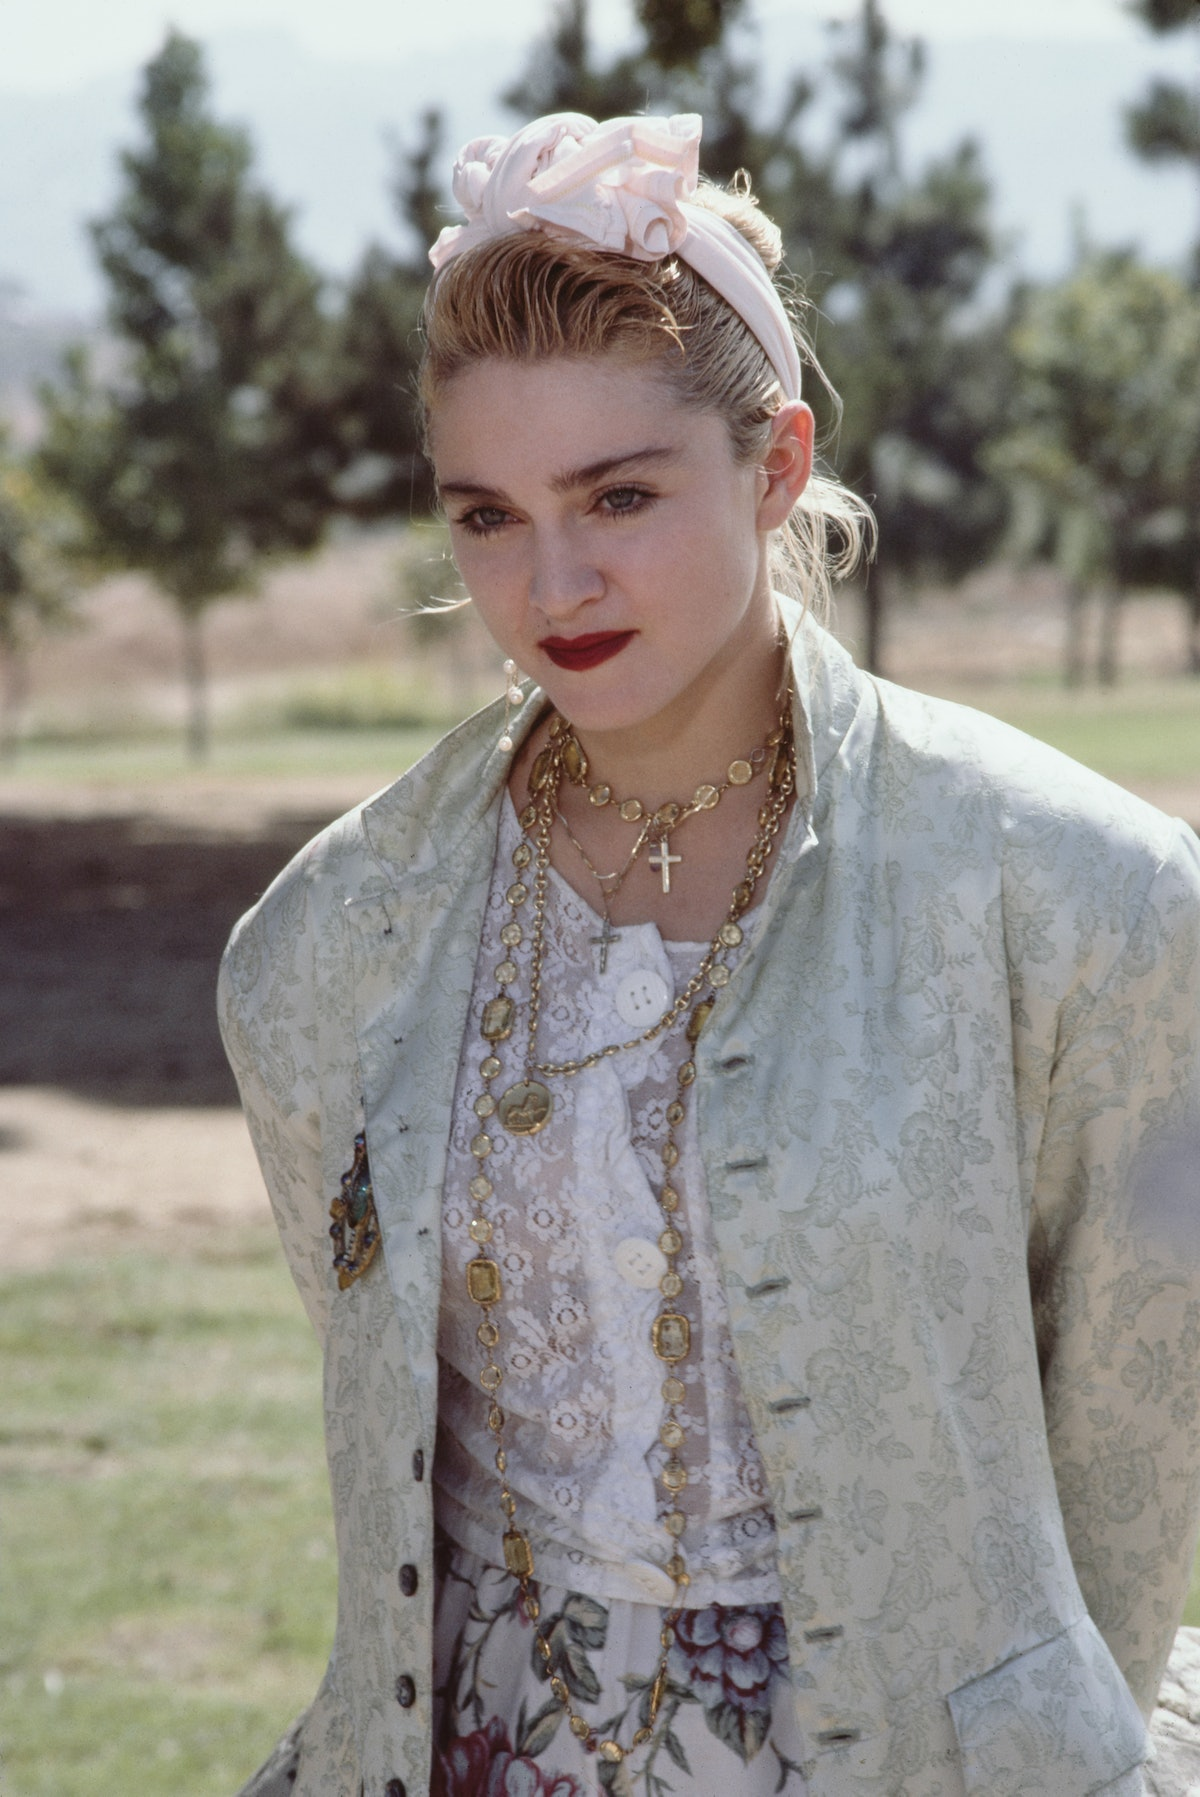 American singer and actress Madonna at a Pro-Peace rally in Van Nuys, Los Angeles, California, 5th O...